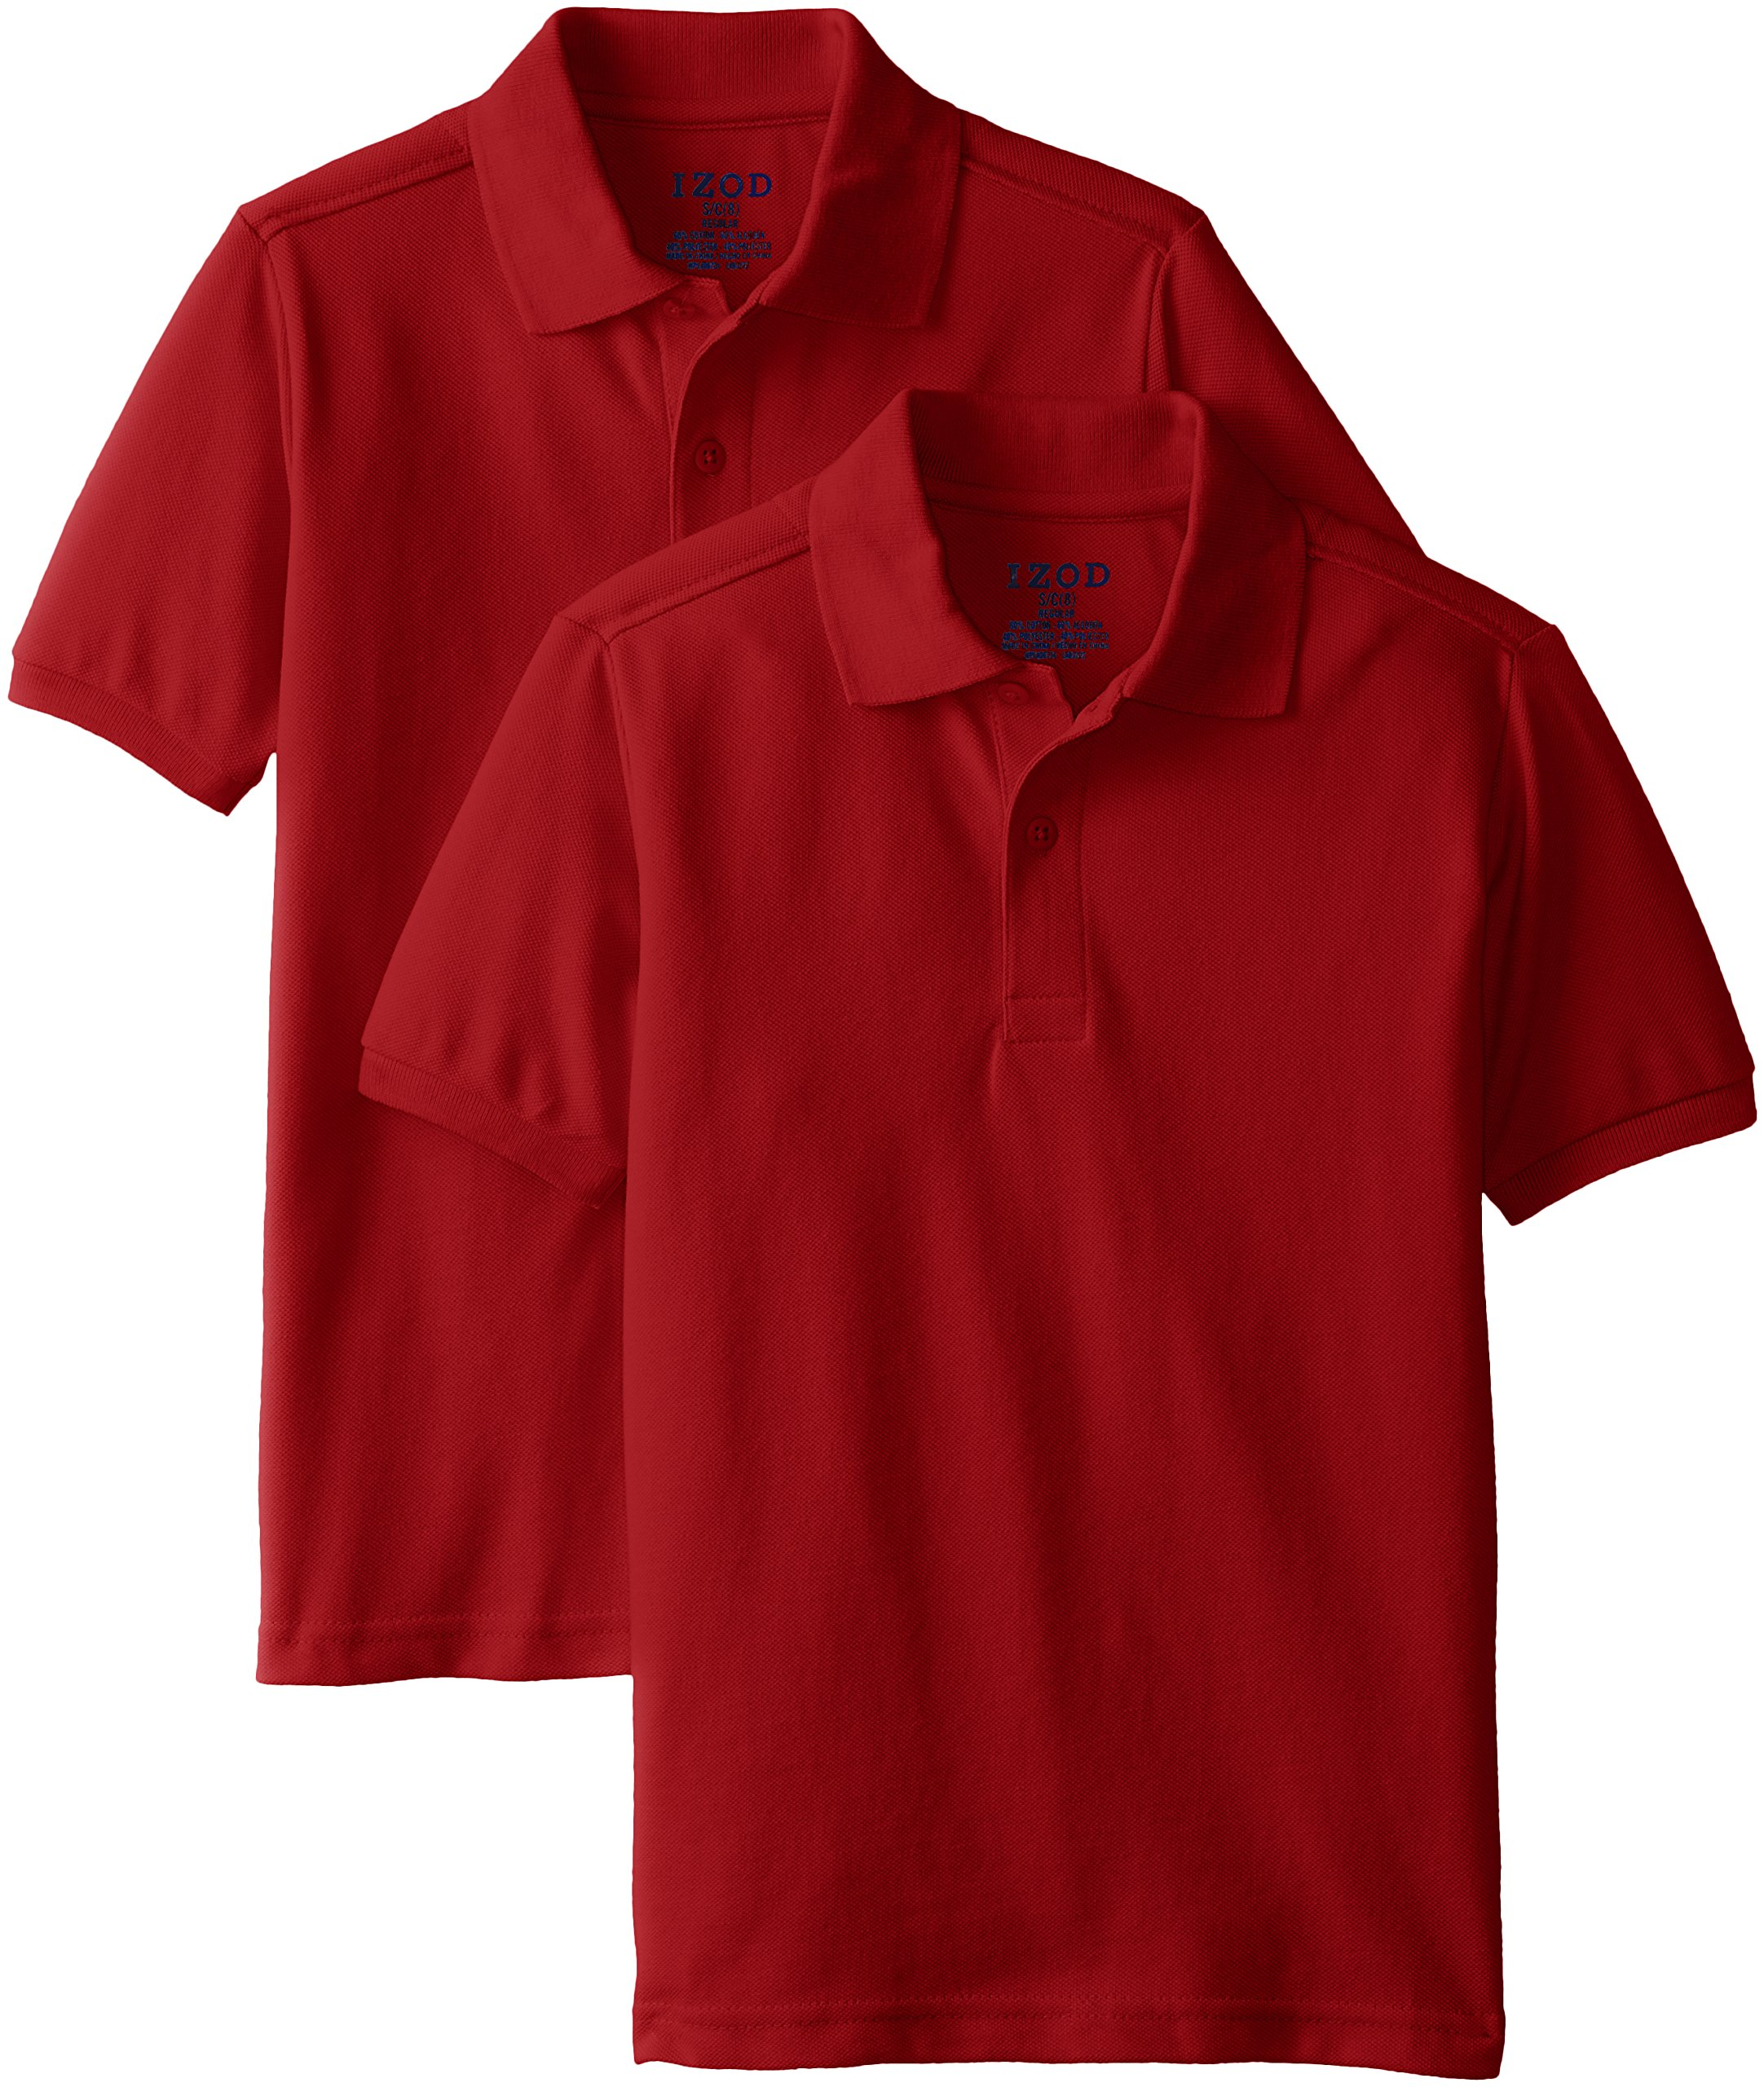 IZOD Little Boys' Short Sleeve Polo 2 Piece Bundle, Red, Medium